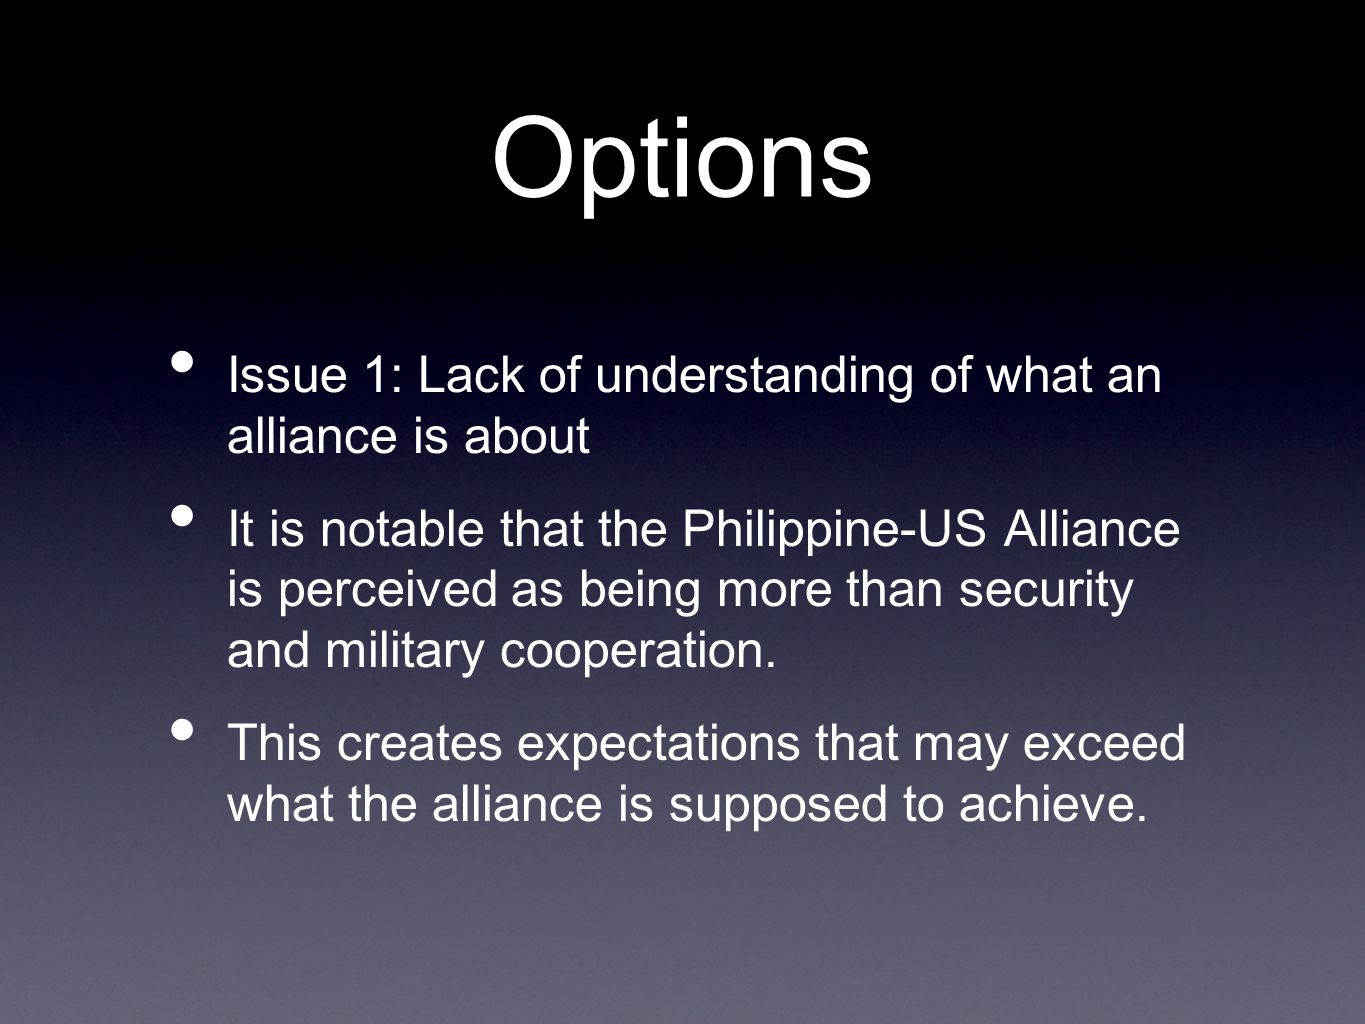 Options Issue 1: Lack of understanding of what an alliance is about It is notable that the Philippine-US Alliance is perceived as being more than security and military cooperation.